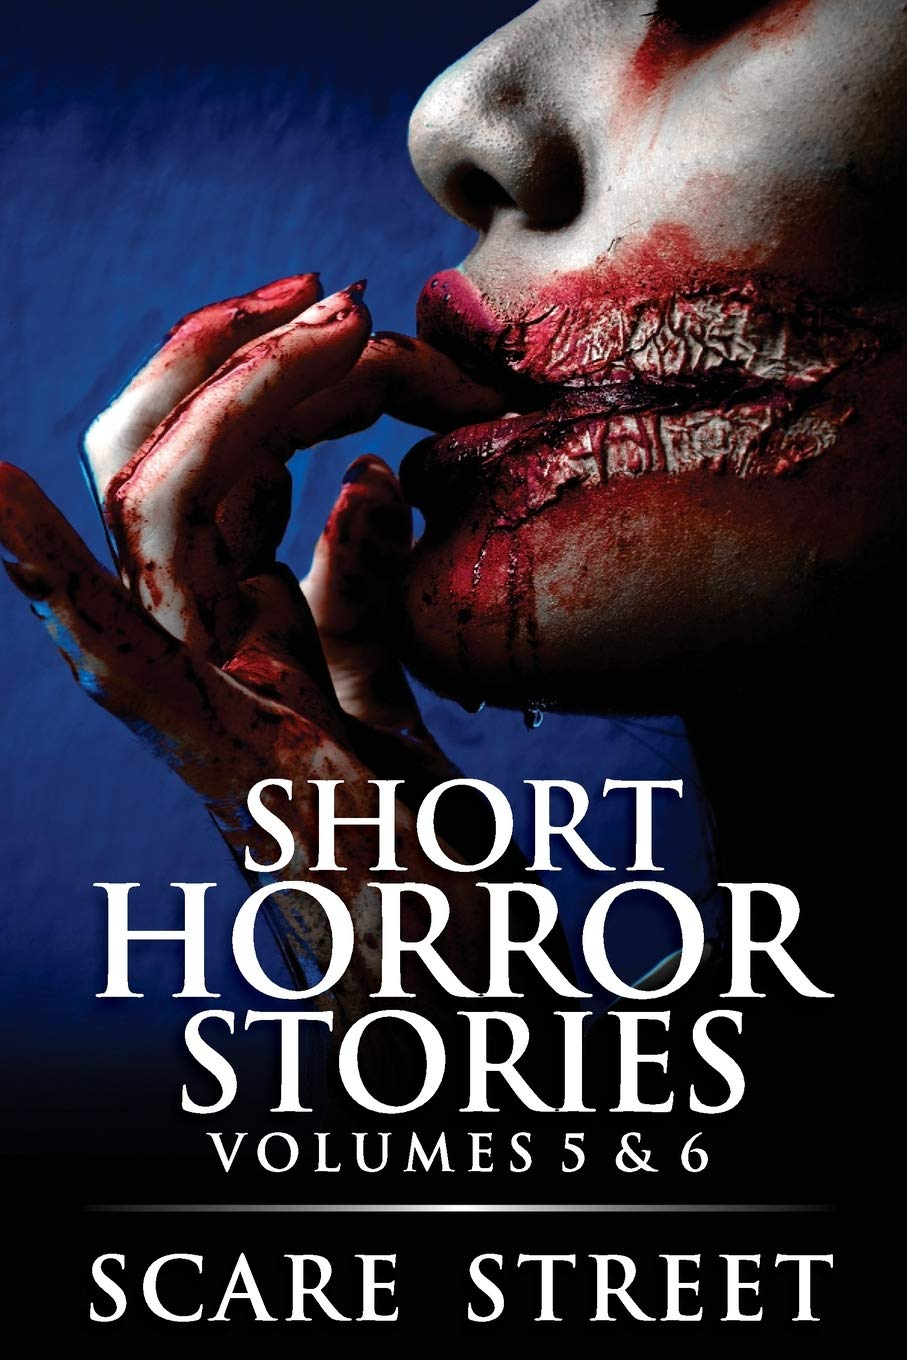 Short Horror Stories Volumes 5 & 6: Scary Ghosts, Monsters, Demons, and Hauntings